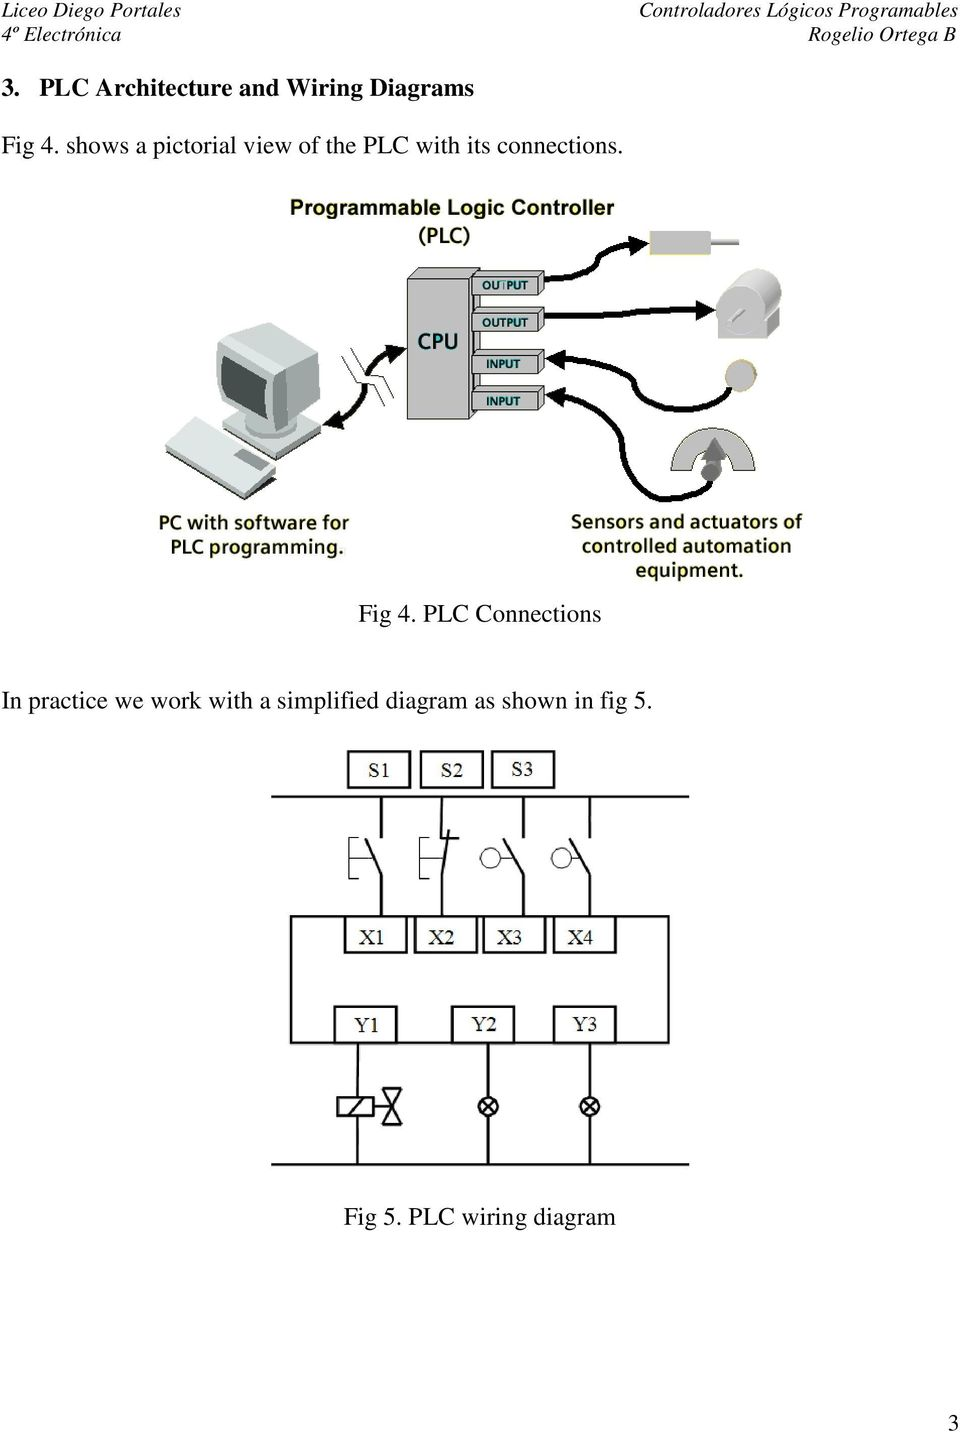 page_3?resize\\\\\=665%2C992 siemens duct detector wiring diagram the best wiring diagram 2017 siemens xls wiring diagram at bakdesigns.co